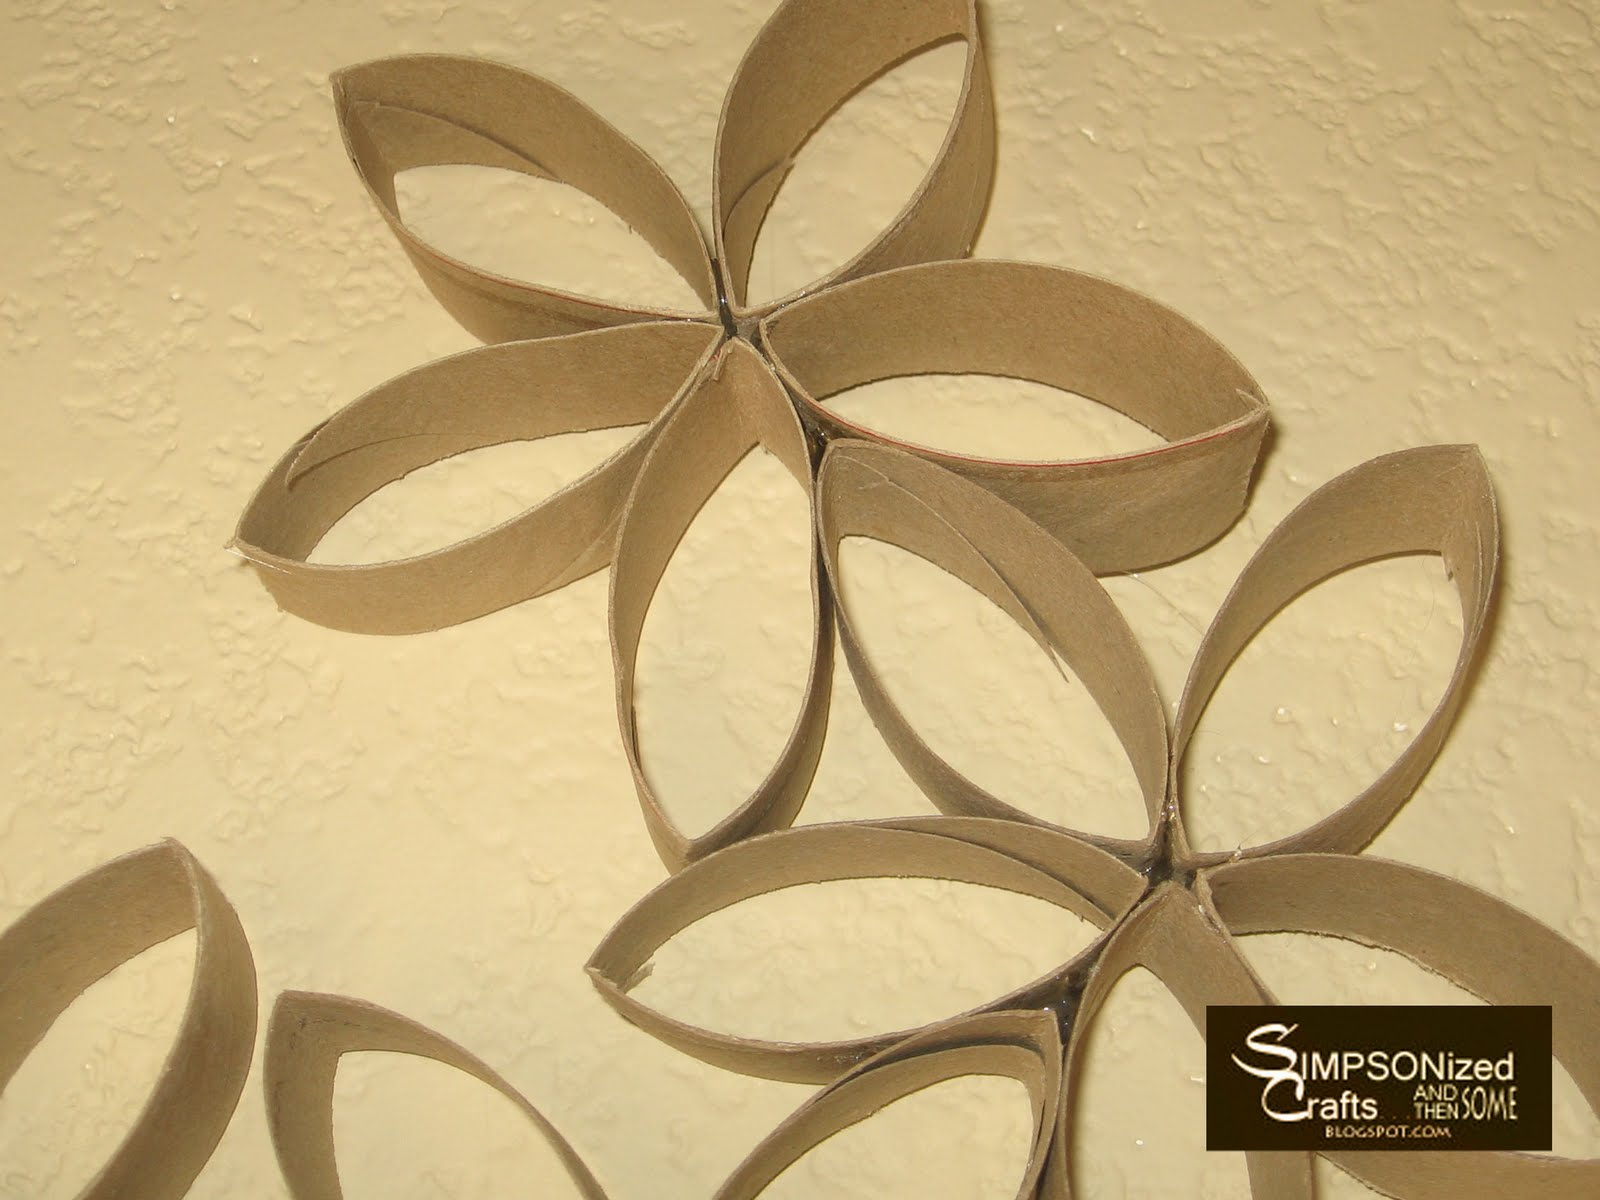 Old Fashioned Toilet Paper Roll Flower Wall Art Picture Collection ...